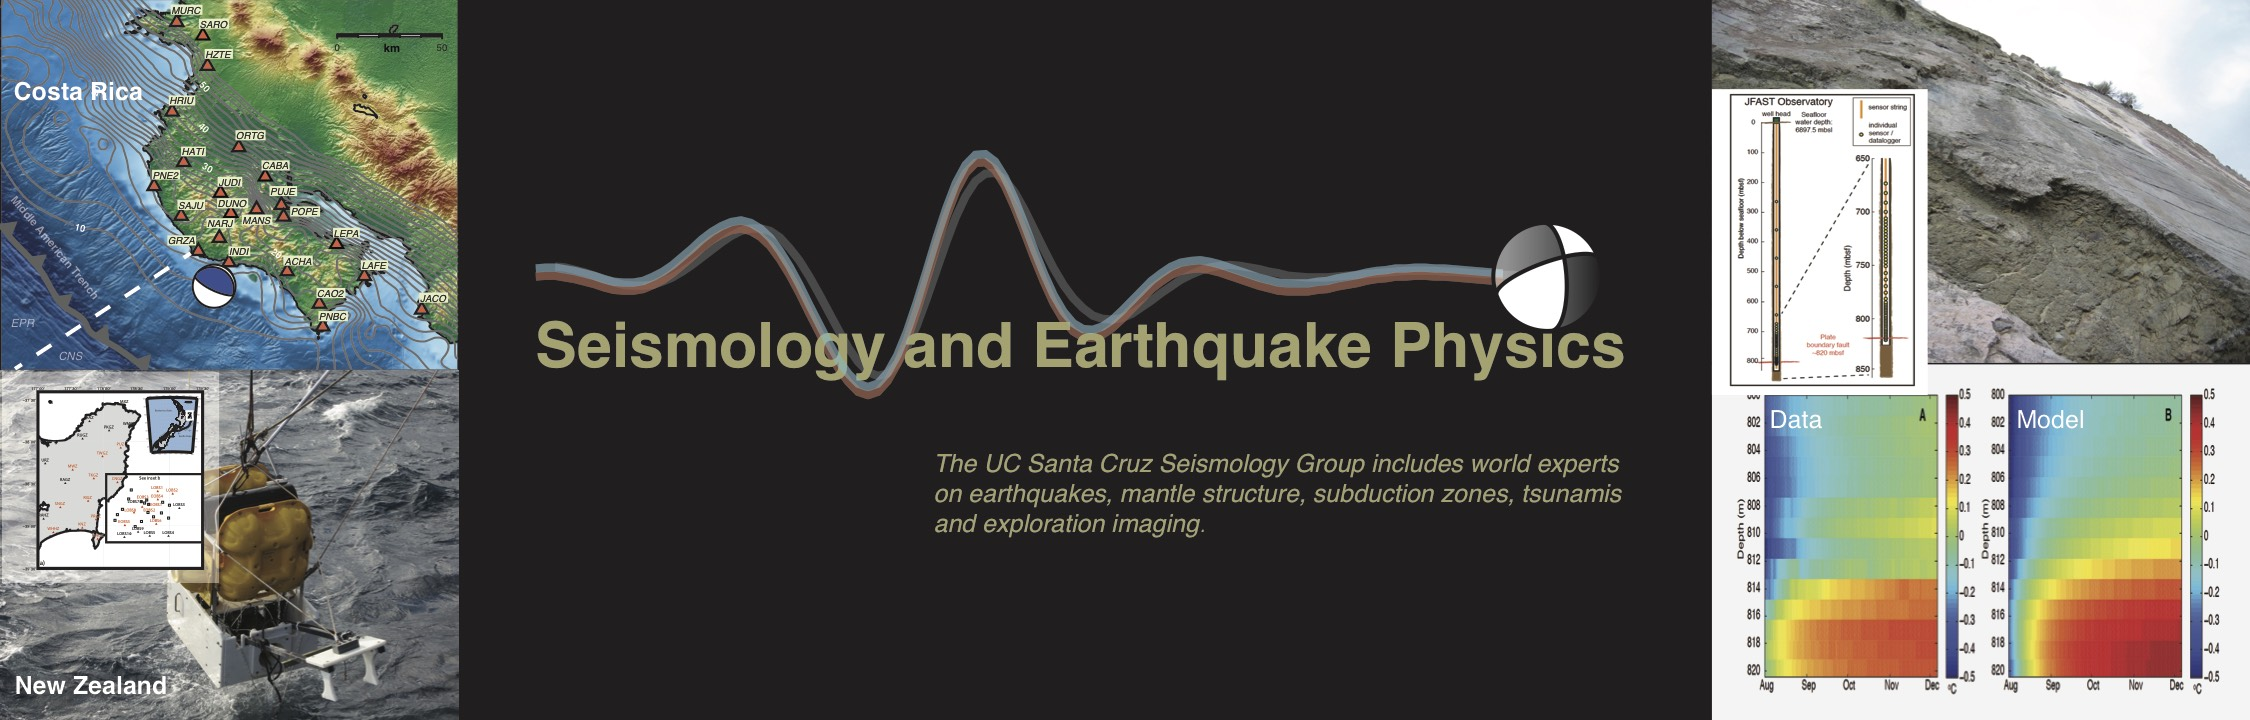 Seismology and Earthquake Physics